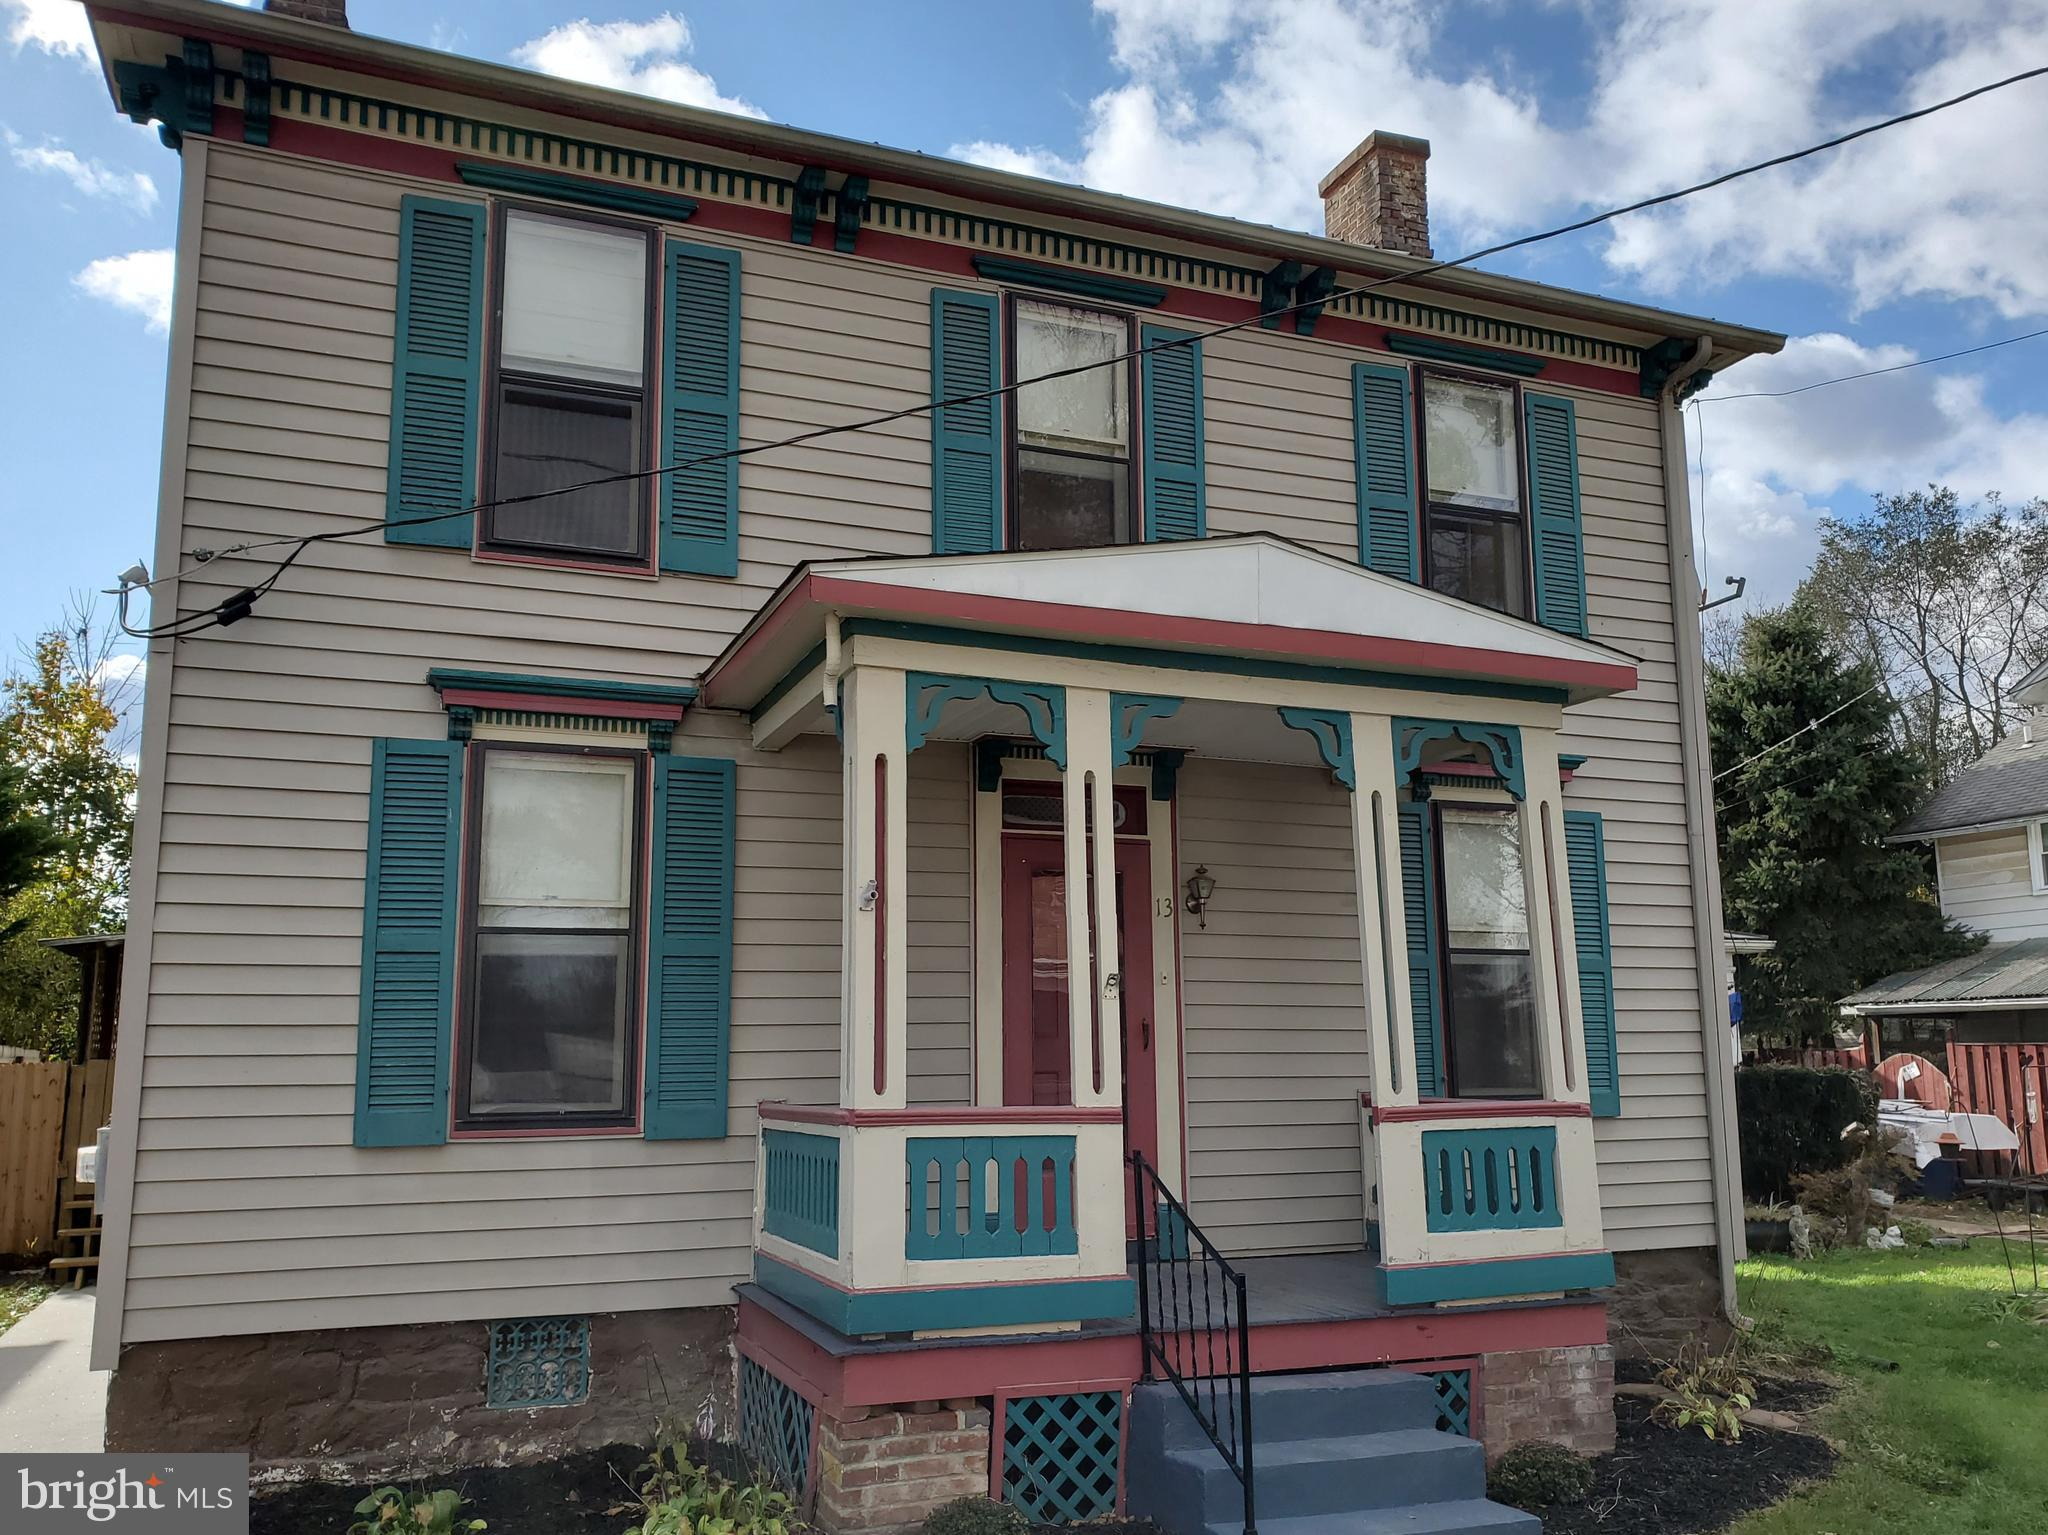 13 W BROADWAY STREET, UNION BRIDGE, MD 21791